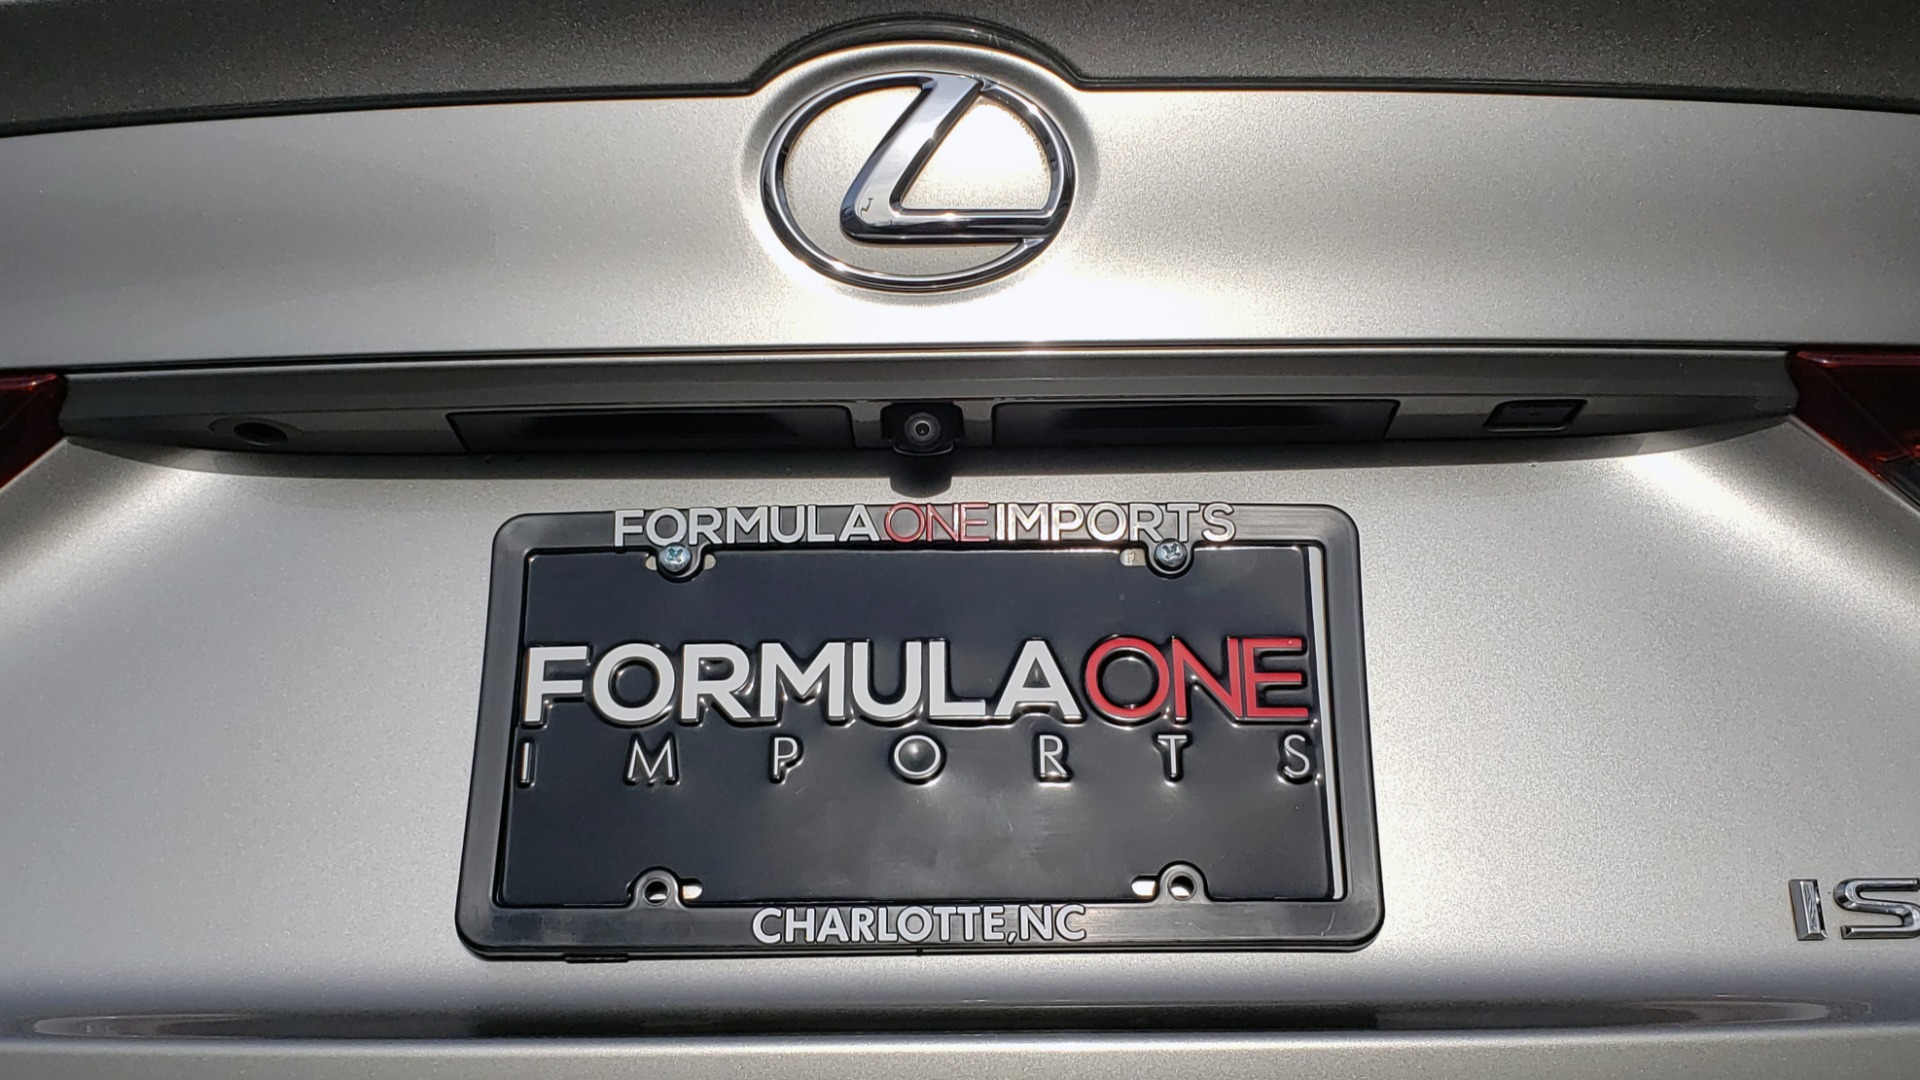 Used 2017 Lexus IS 200 TURBO F-SPORT / BSM / SUNROOF / VENT SEATS / REARVIEW for sale $24,945 at Formula Imports in Charlotte NC 28227 28